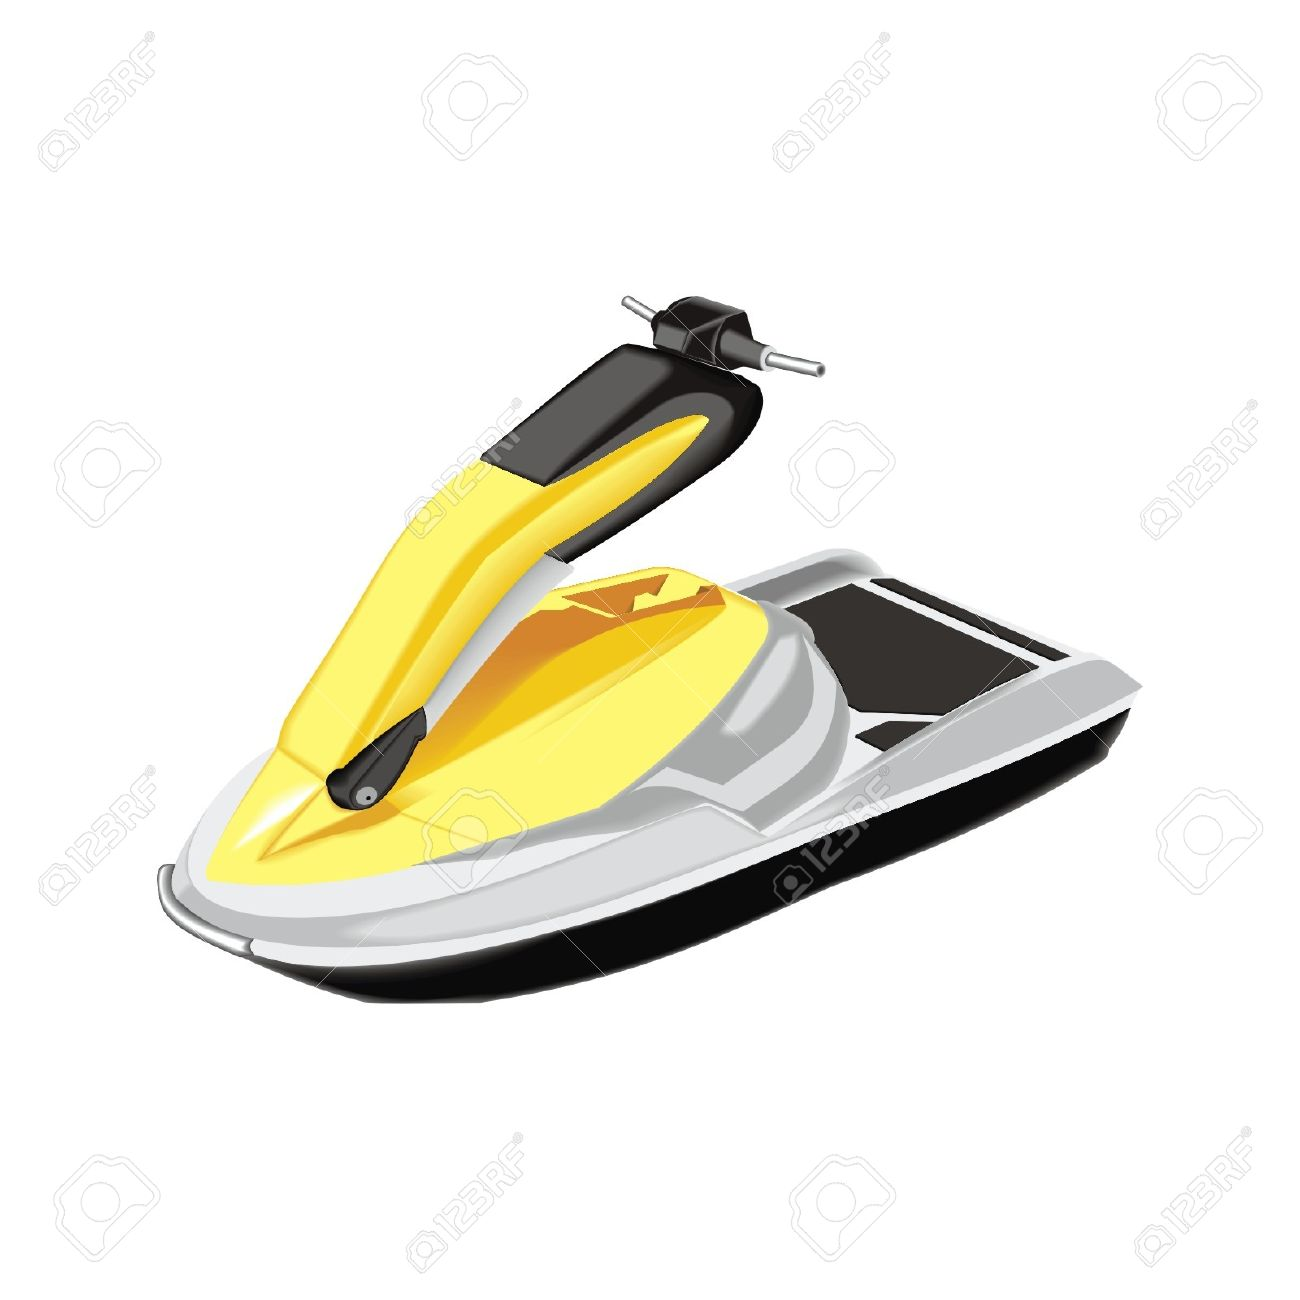 Water Scooter Royalty Free Cliparts, Vectors, And Stock.